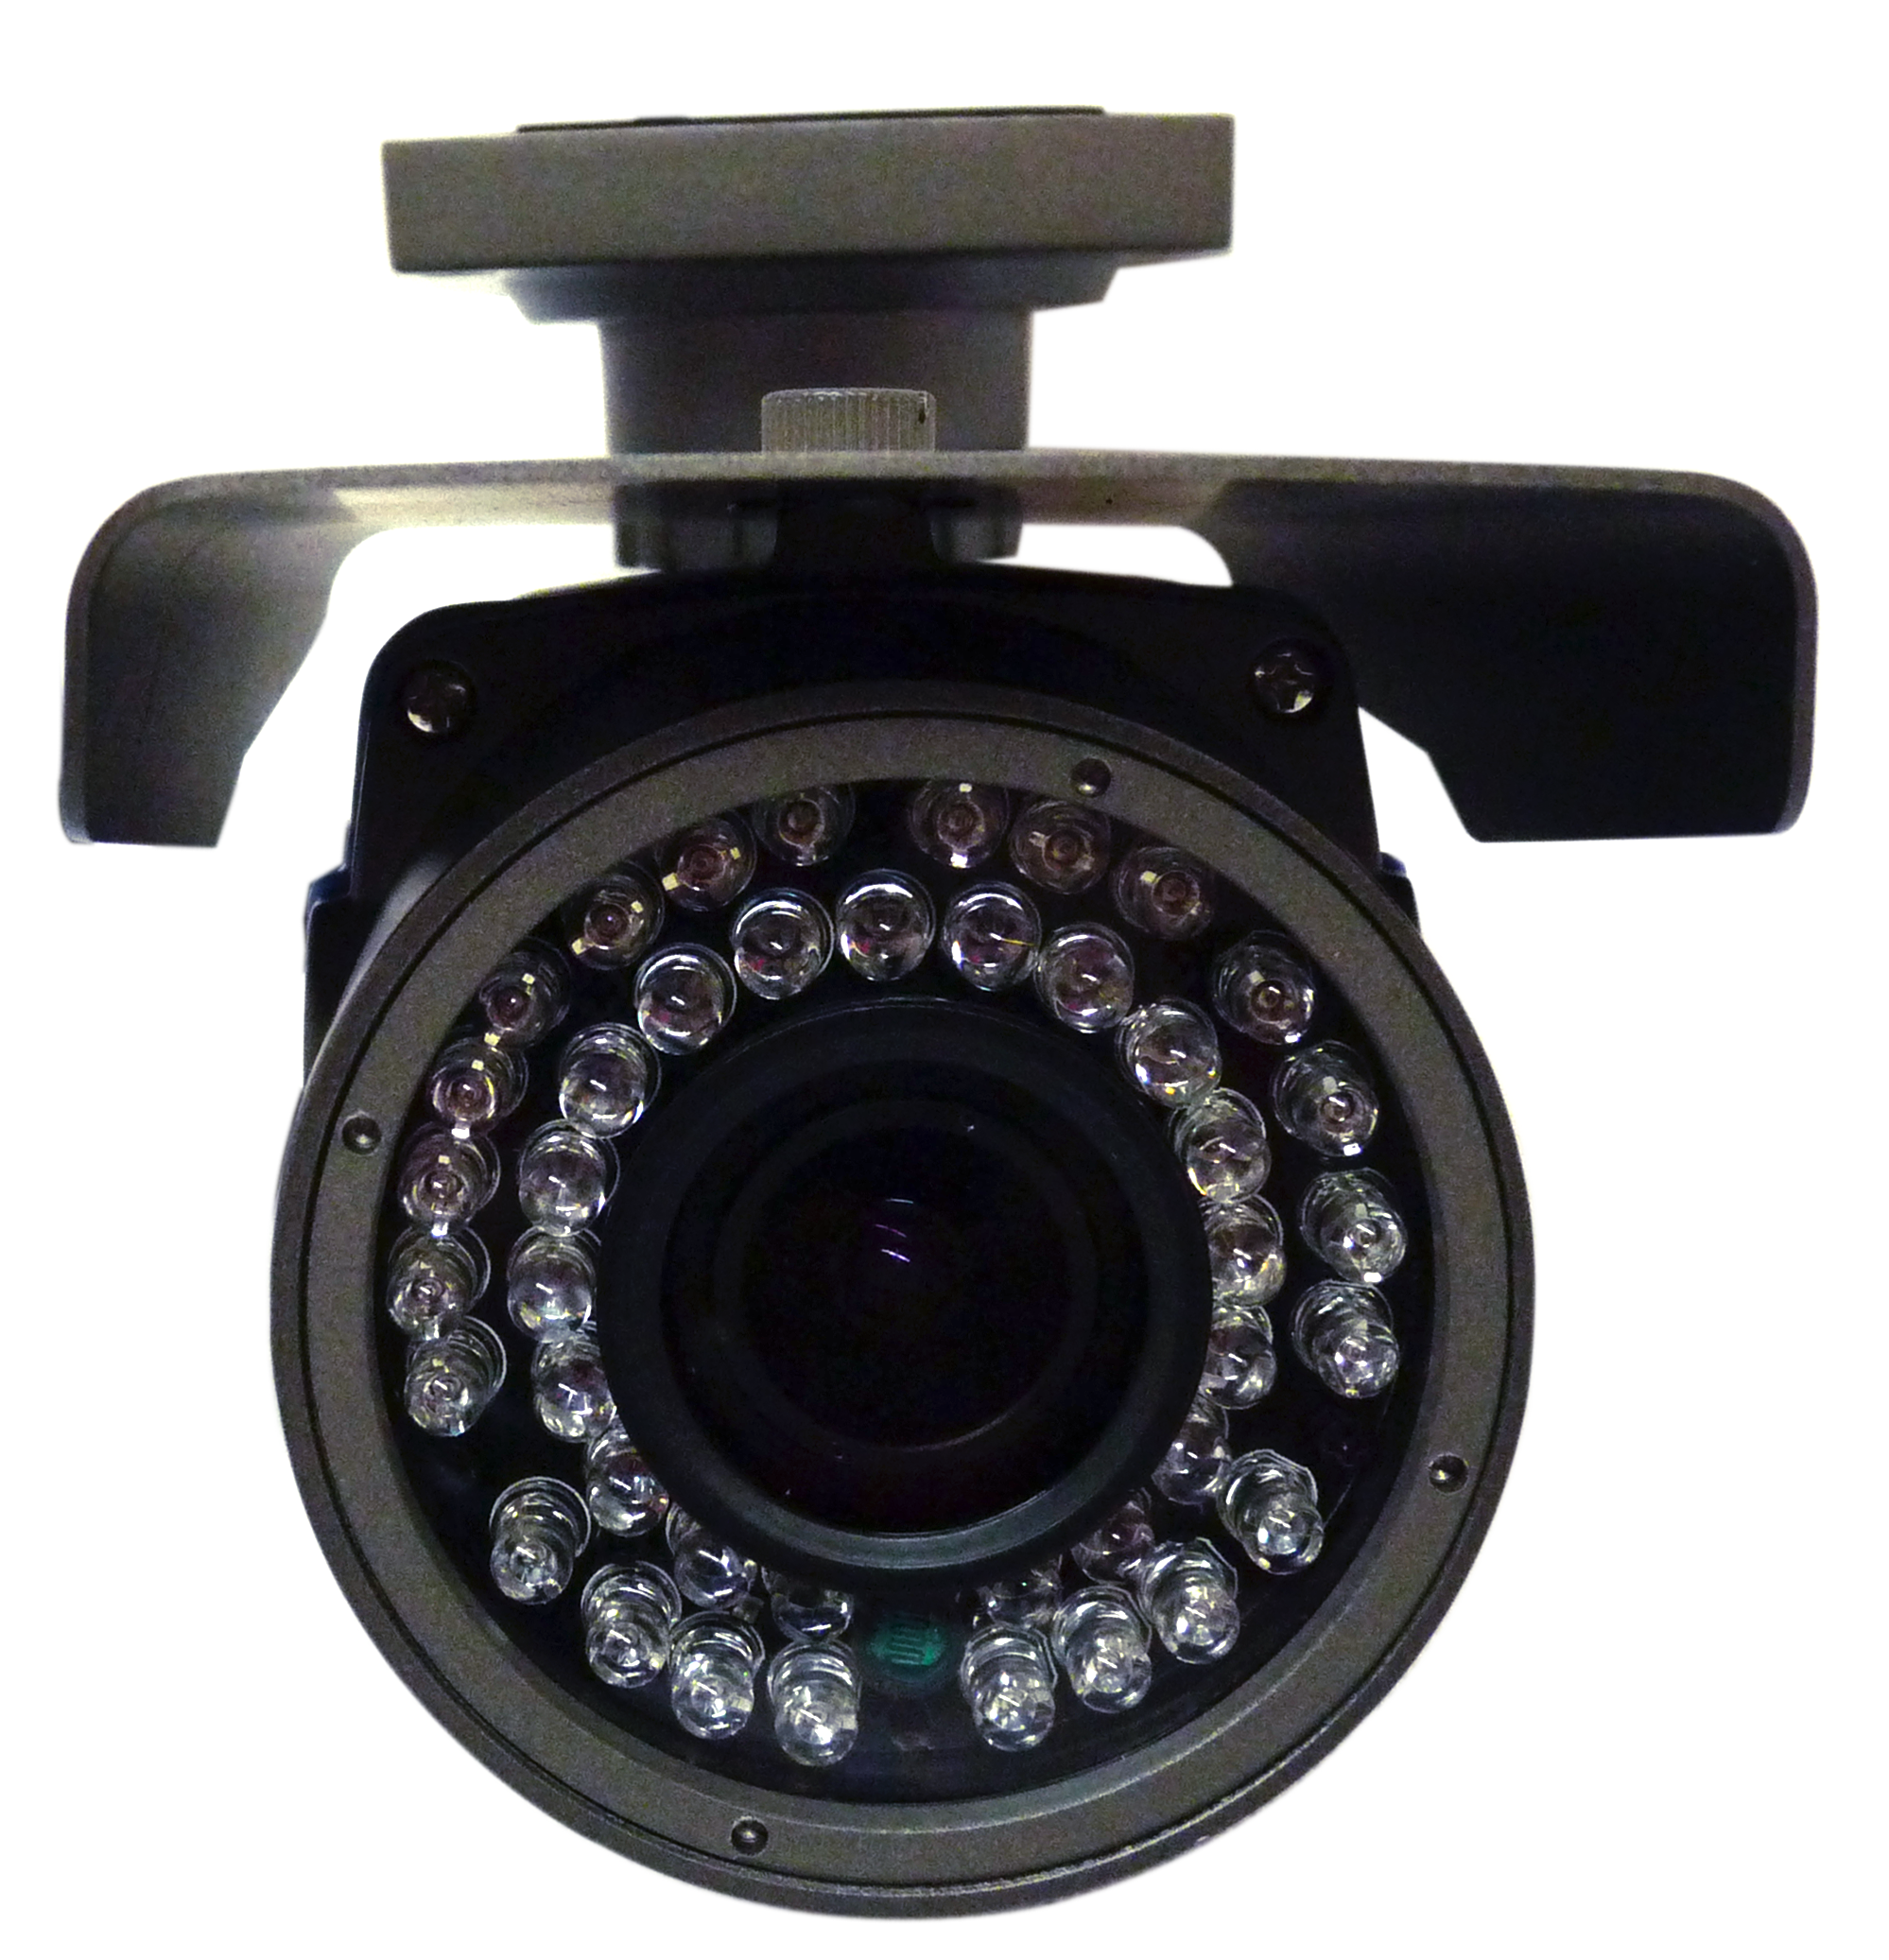 DBS 809G - 700TVL CCTV Bullet Security Camera - 1/3'' Sony Super HAD CCD II